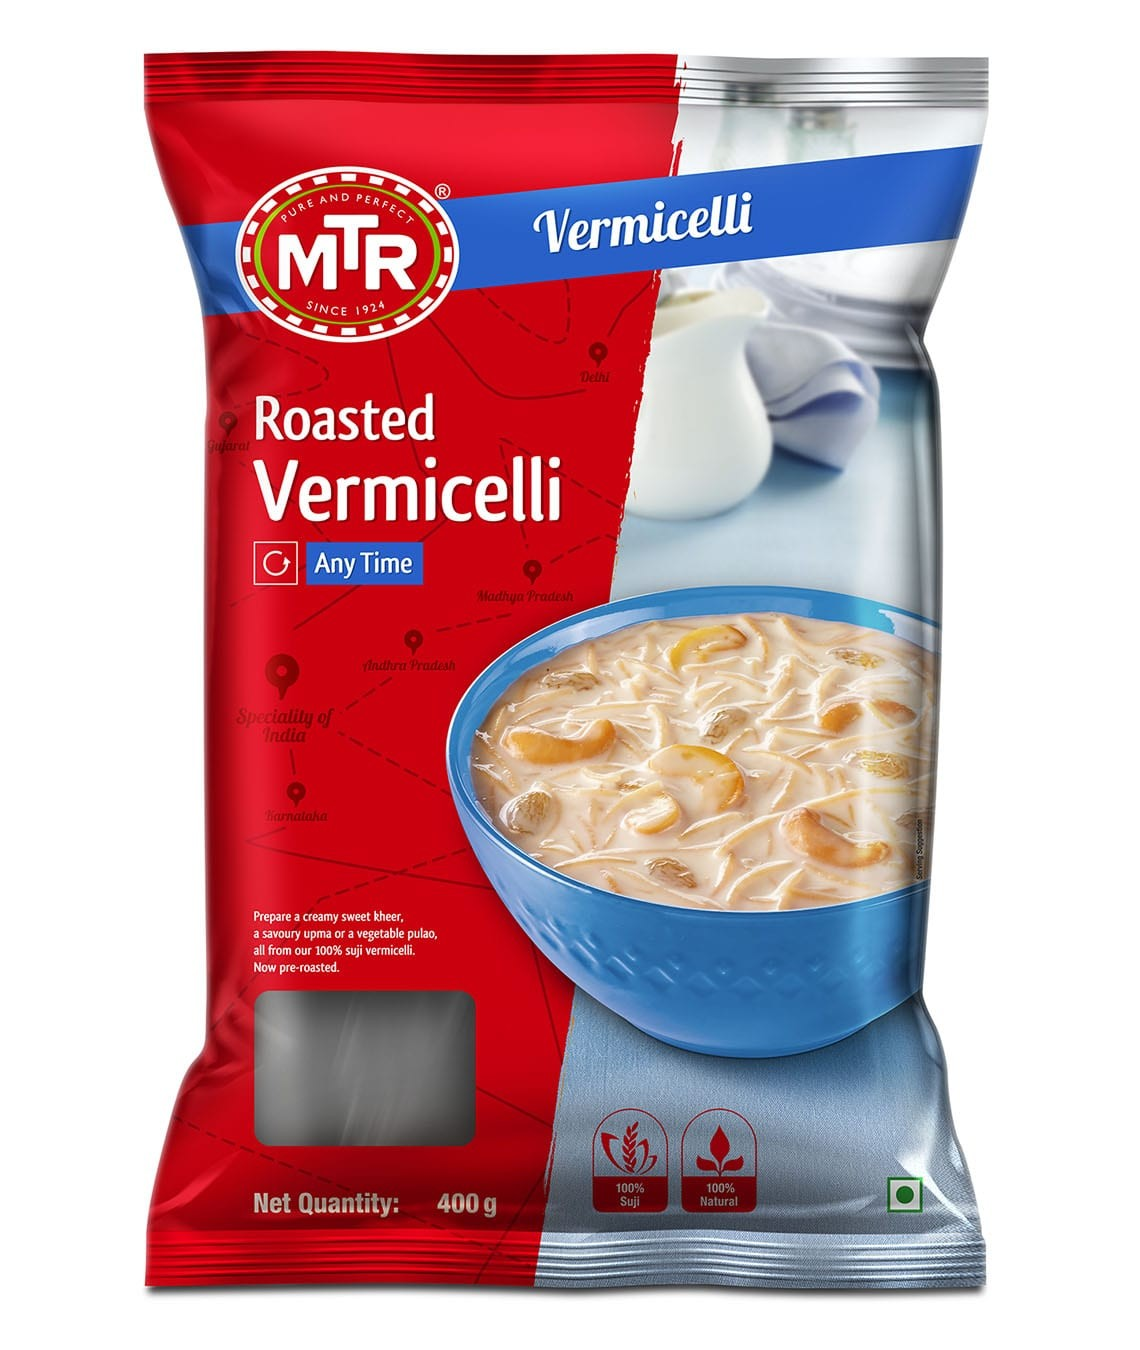 Mtr Vermicelli Roasted